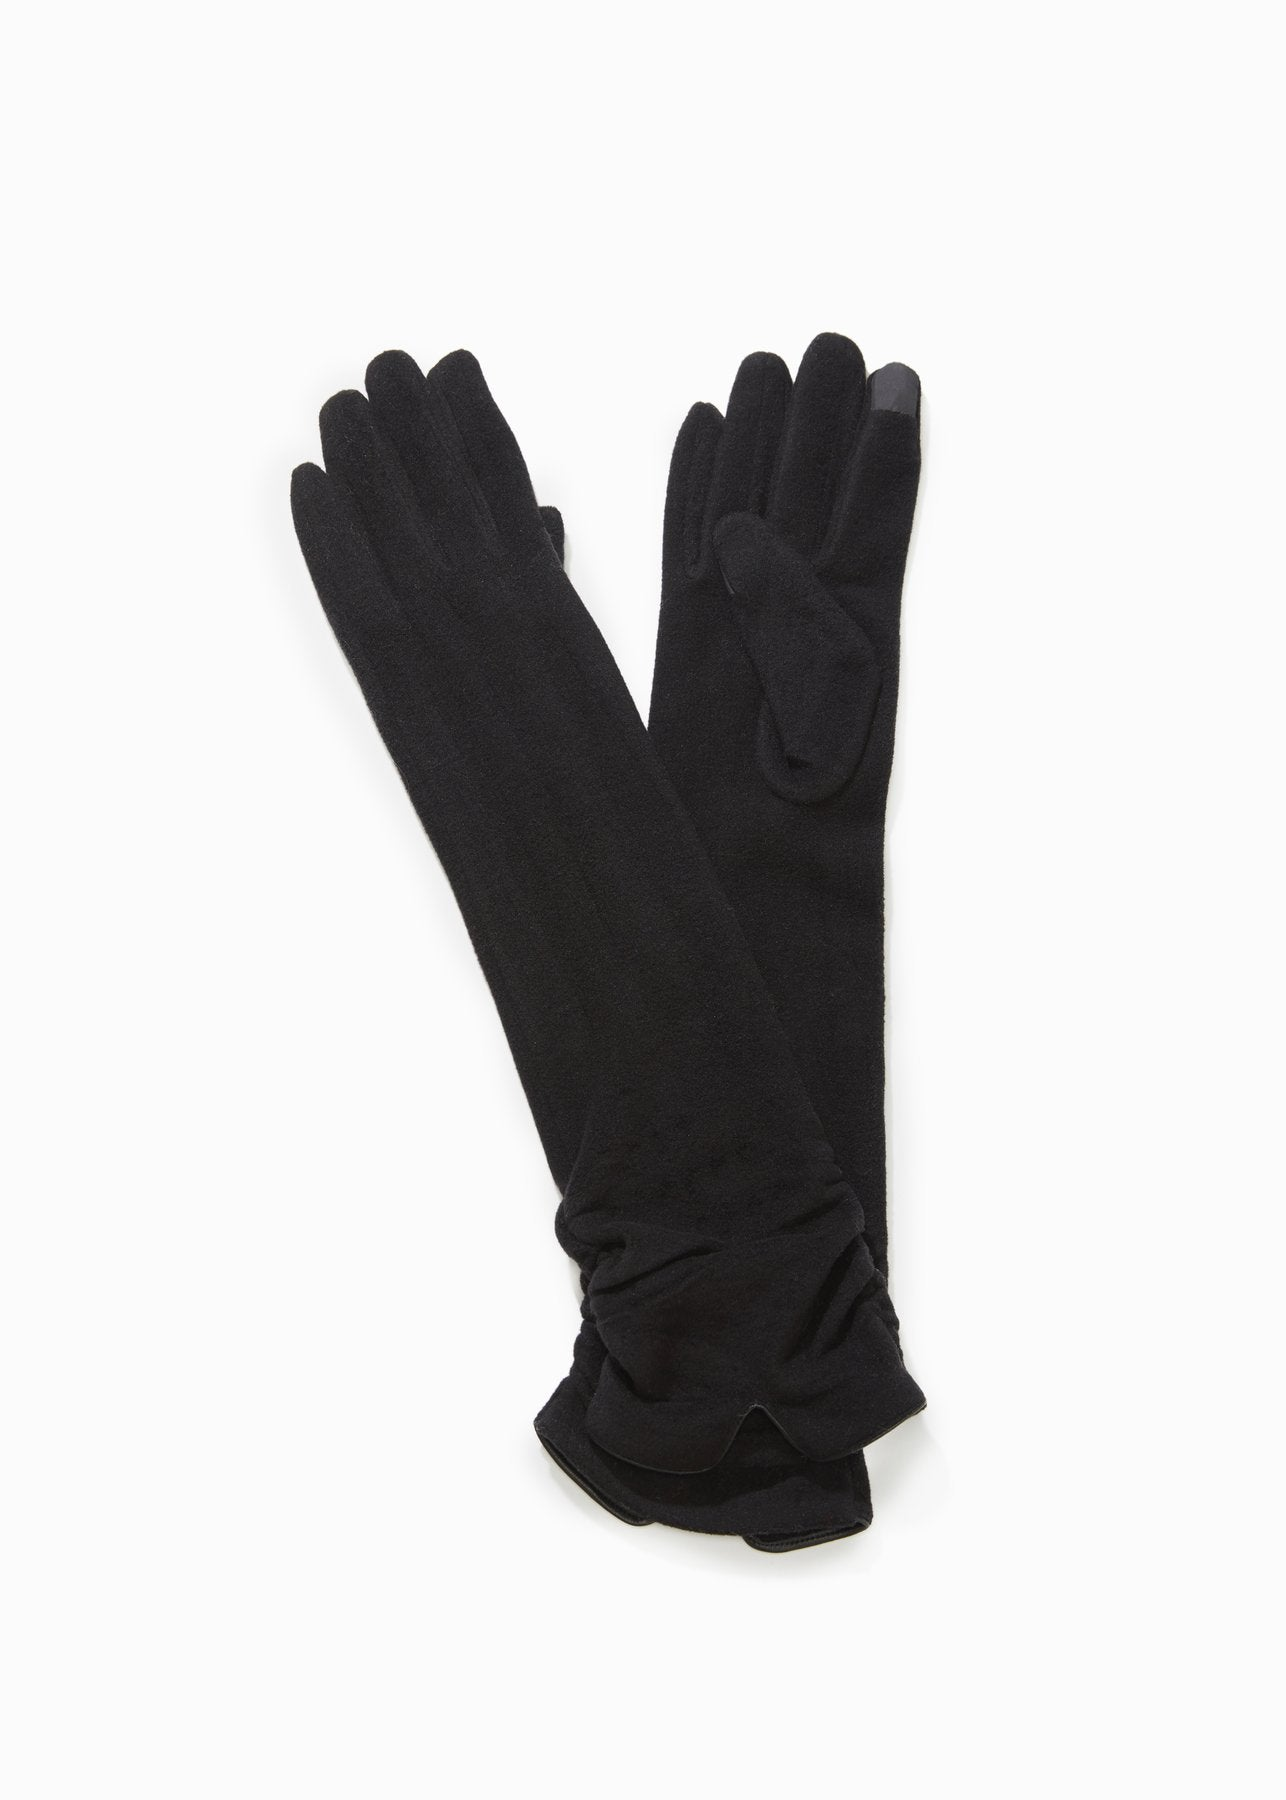 Basic Extra Long Gloves in Black